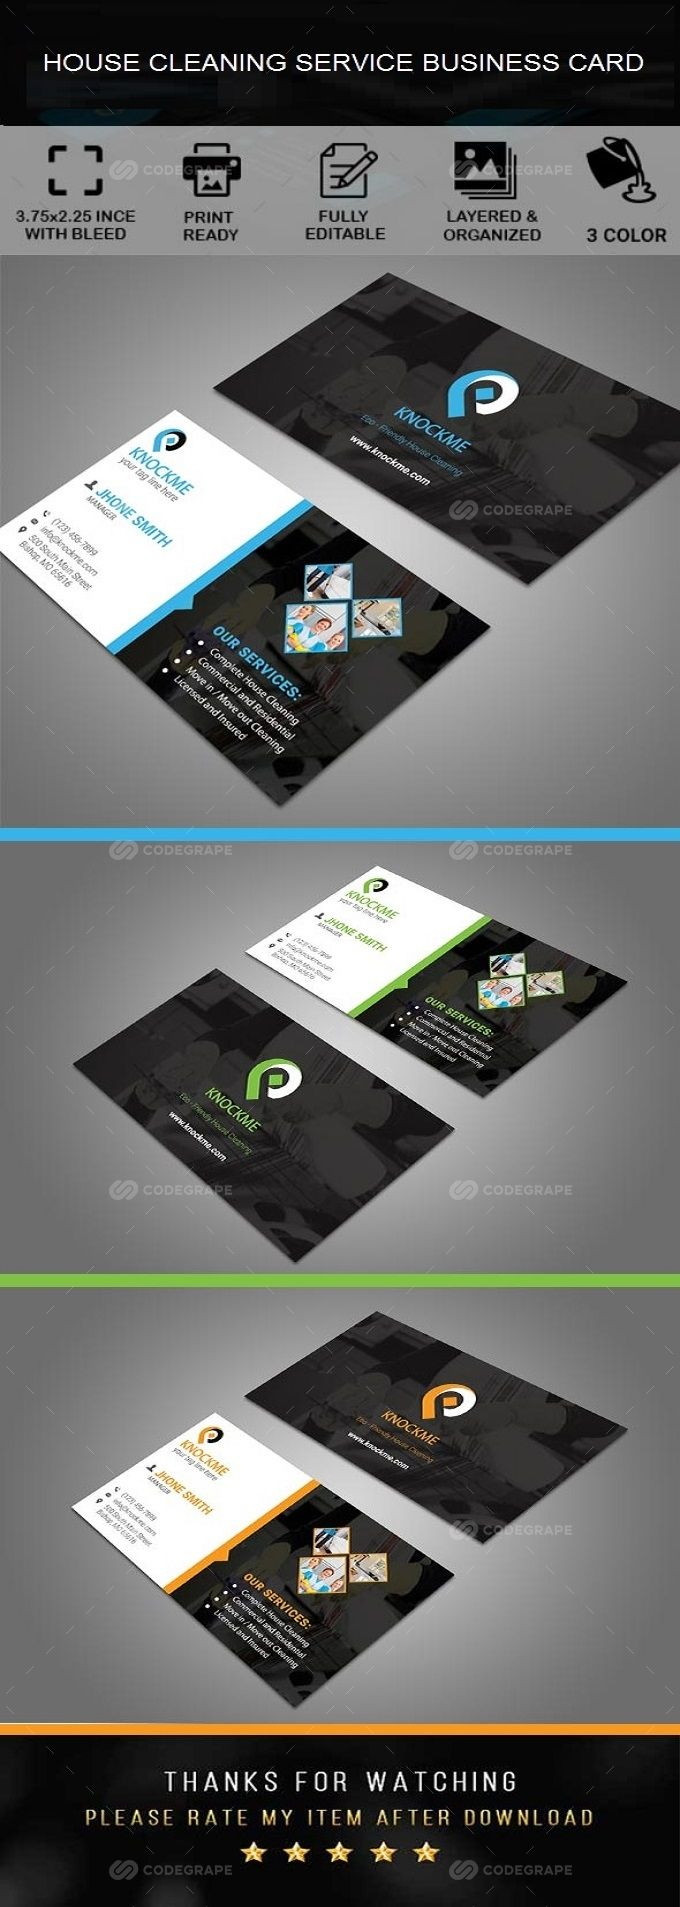 Business Card Cleaning Logo Business Cleaning Business Cards Business Card Template Design